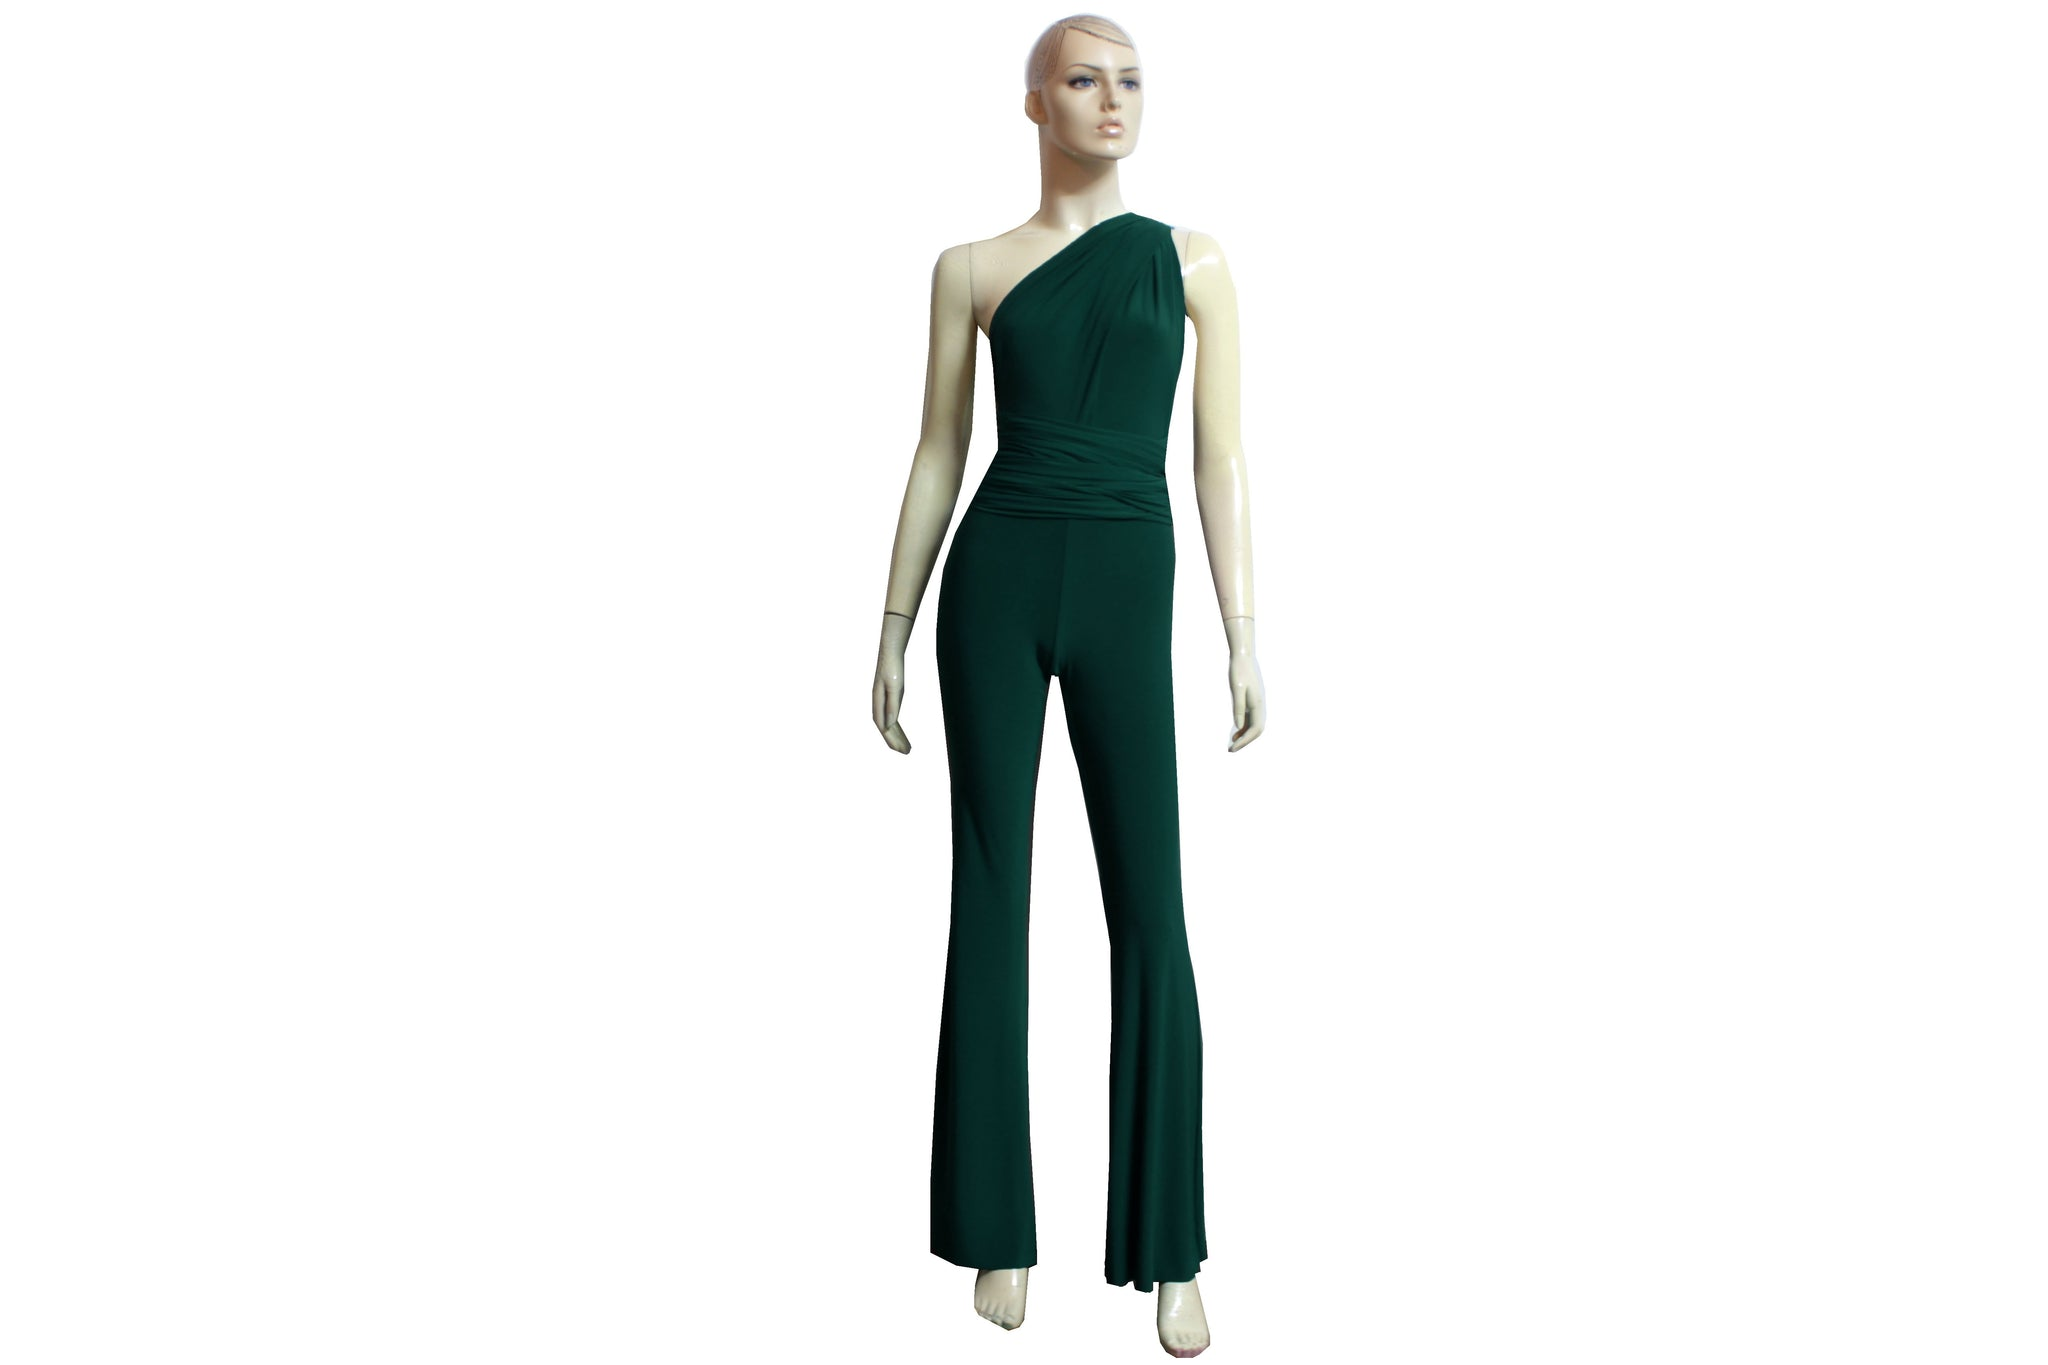 Dark Green Jumpsuit Infinity Romper Bridesmaid Convertible Overall Playsuit Plus Size Prom Outfit Formal Flare Pants Jumpsuit XS-4XL